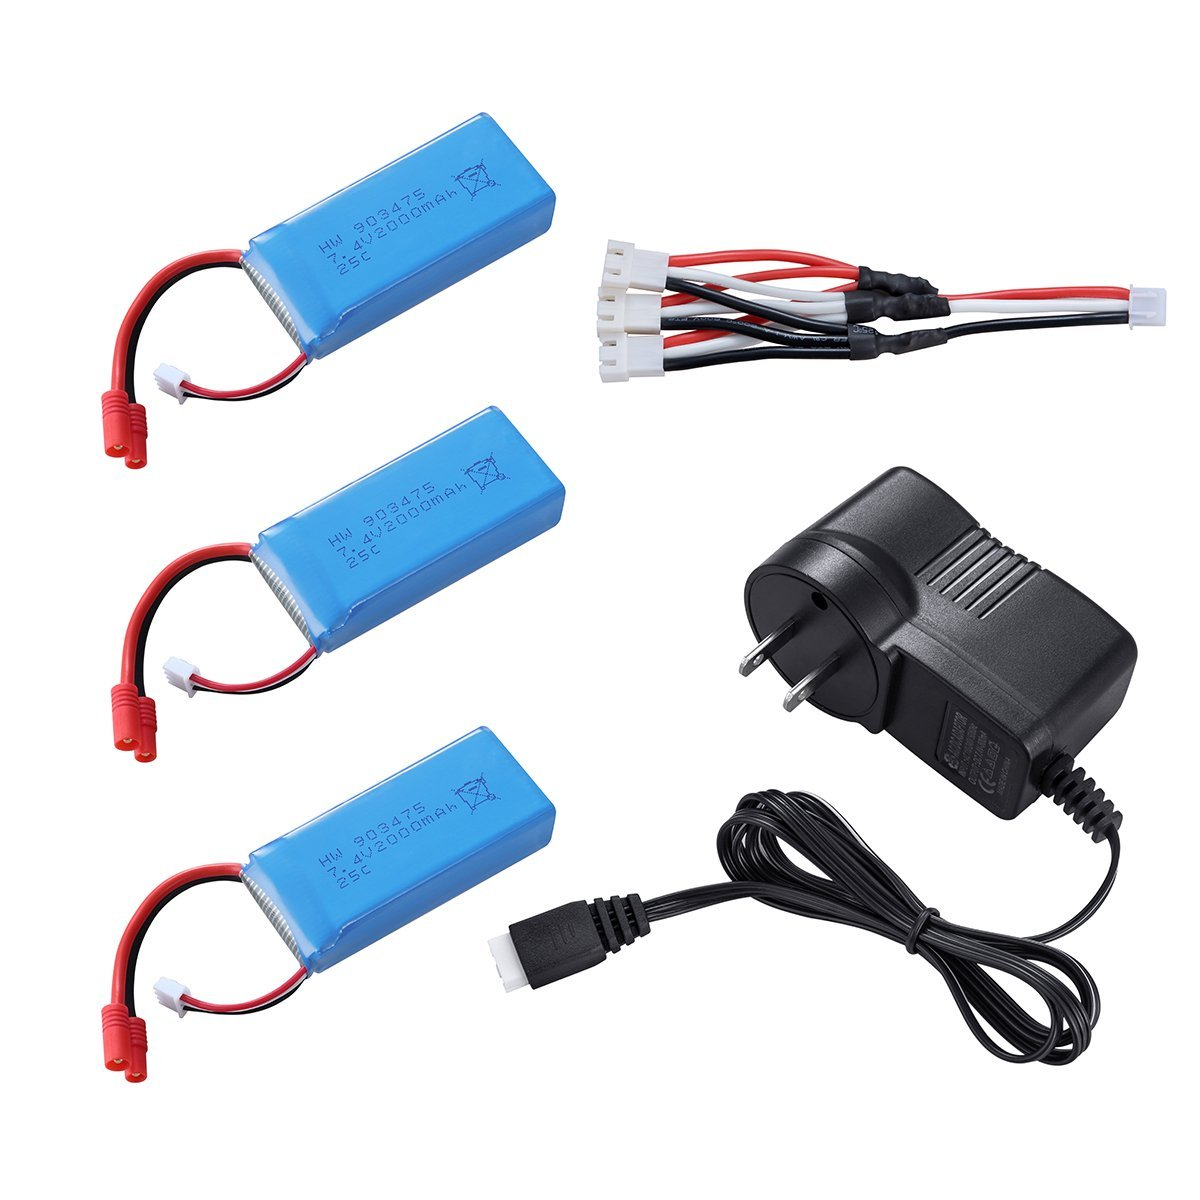 3PCS 2S 7.4V 2000mah Battery Banana Plug for Drone Syma X8C X8W X8G RC Quadcopter with AC Charger and 3in1 Cable 3pcs battery and european regulation charger with 1 cable 3 line for mjx b3 helicopter 7 4v 1800mah 25c aircraft parts